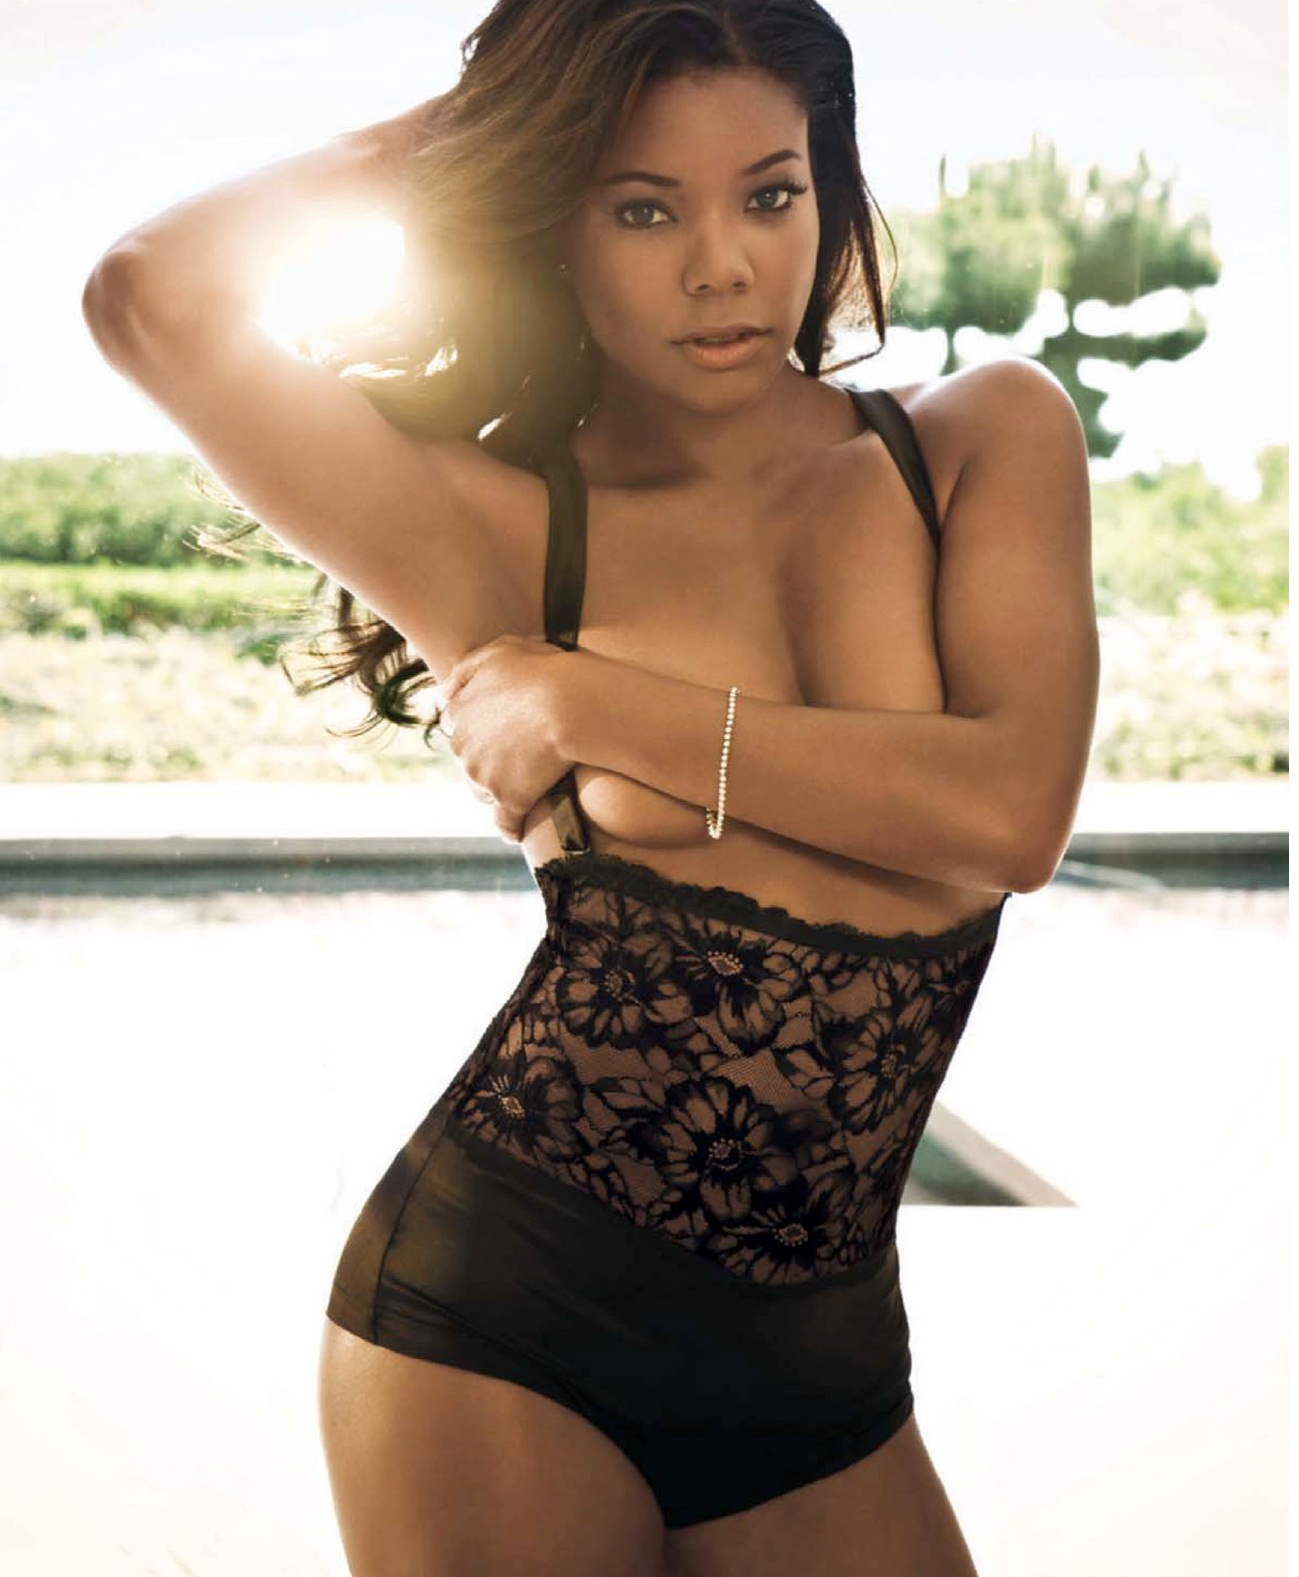 Nude pictures of gabrielle union pic 36